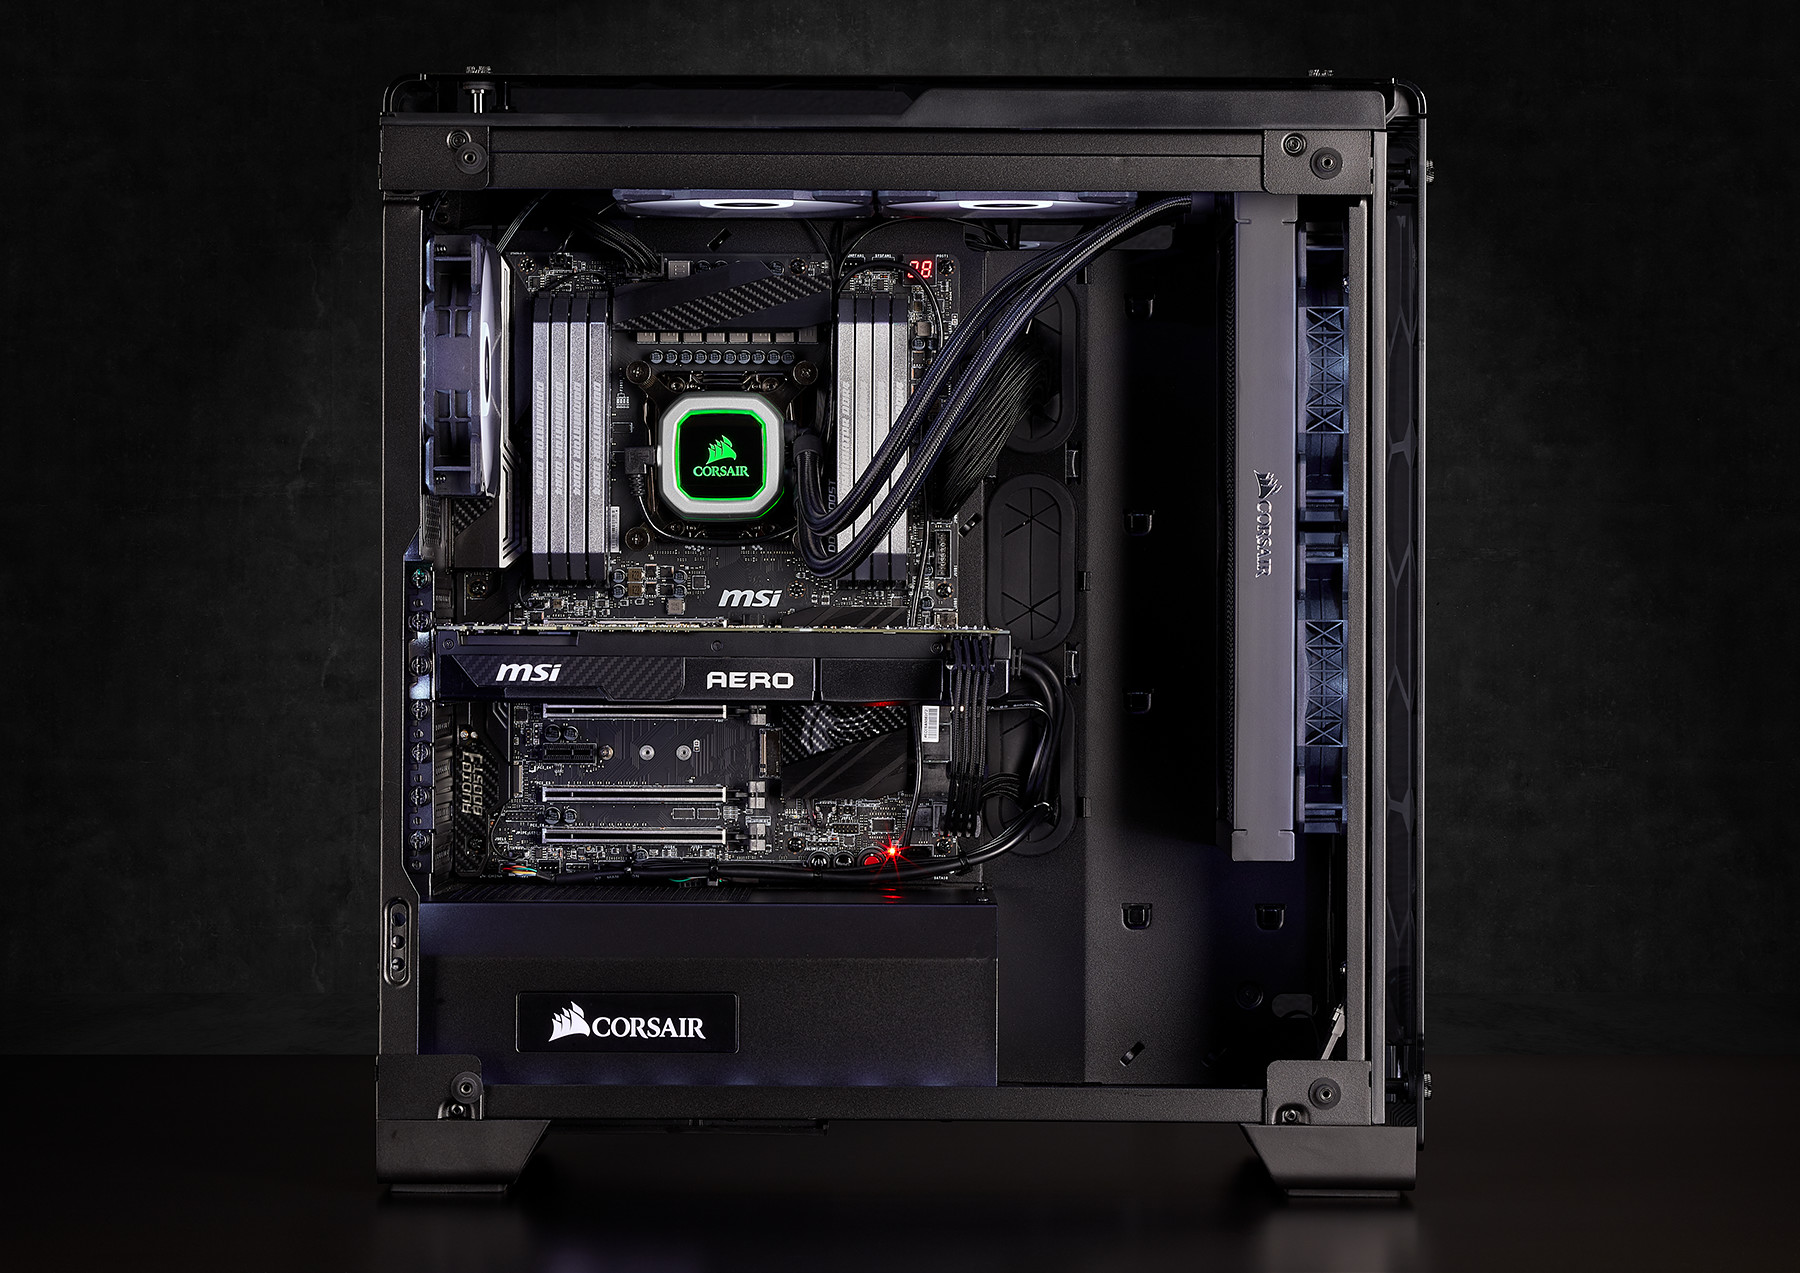 Corsair Launches New Psu Coolers And Case At Ces 2018